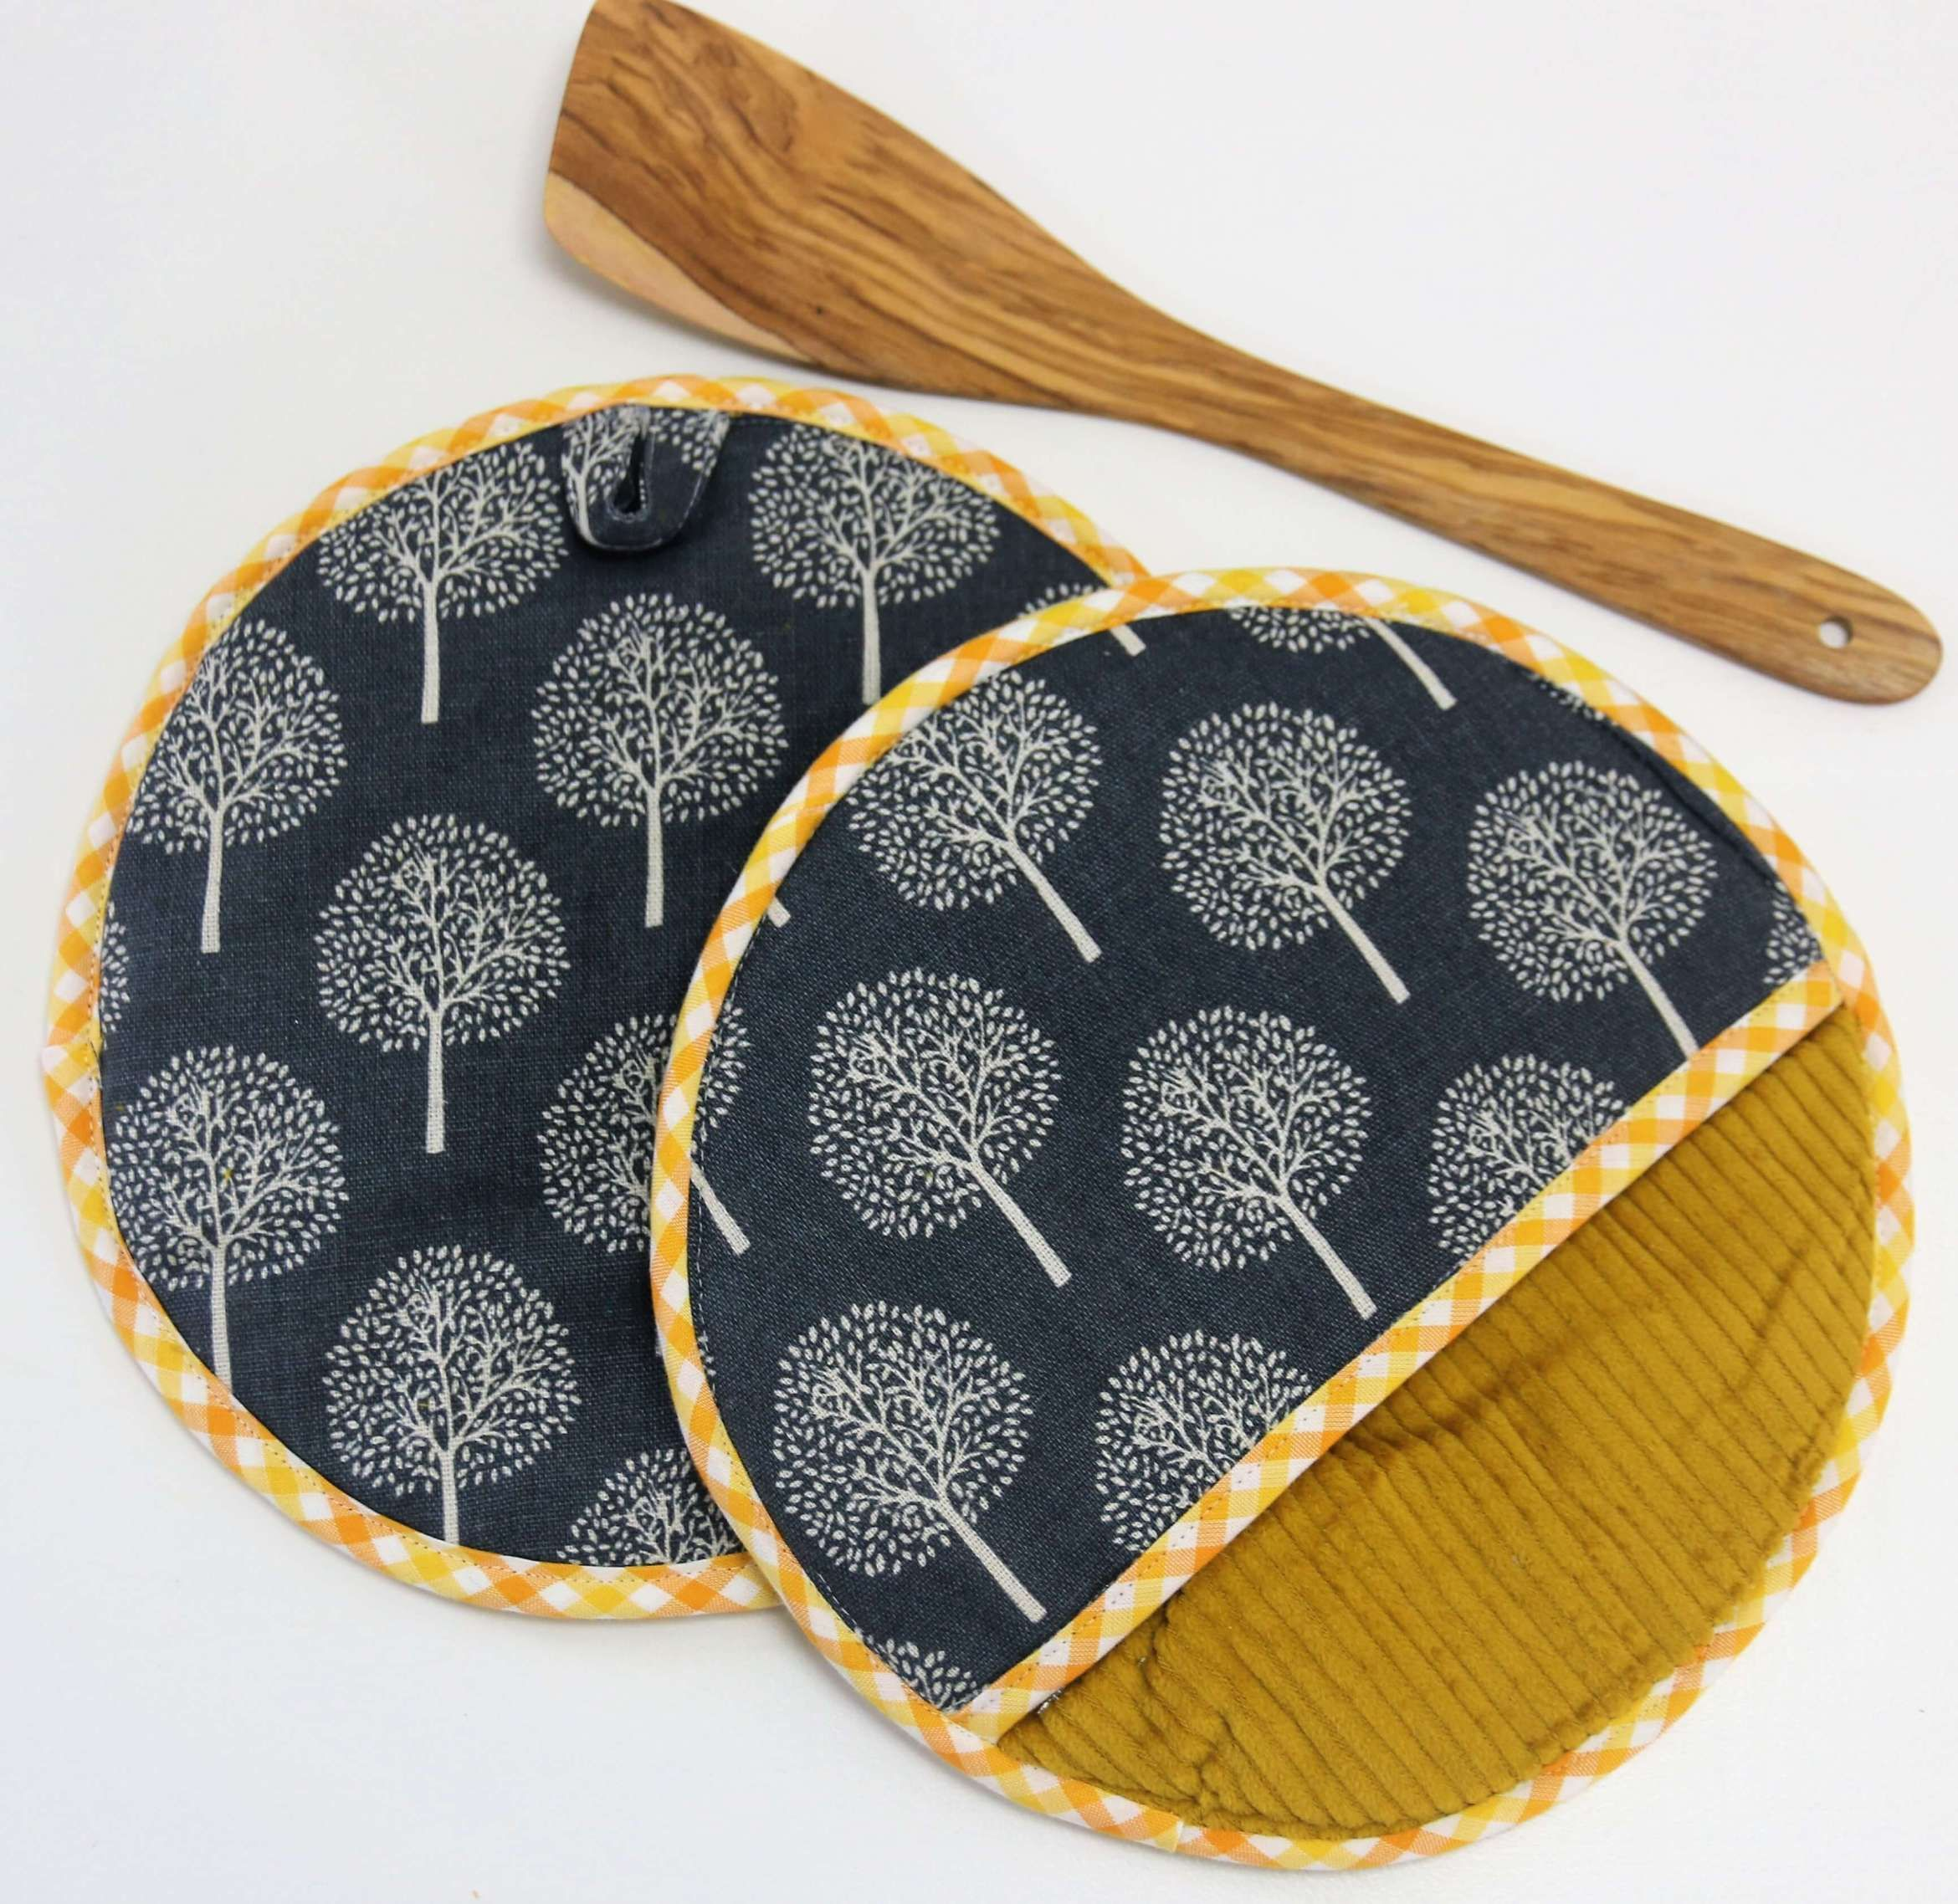 Potholders sew in 15 minutes: Free instructions